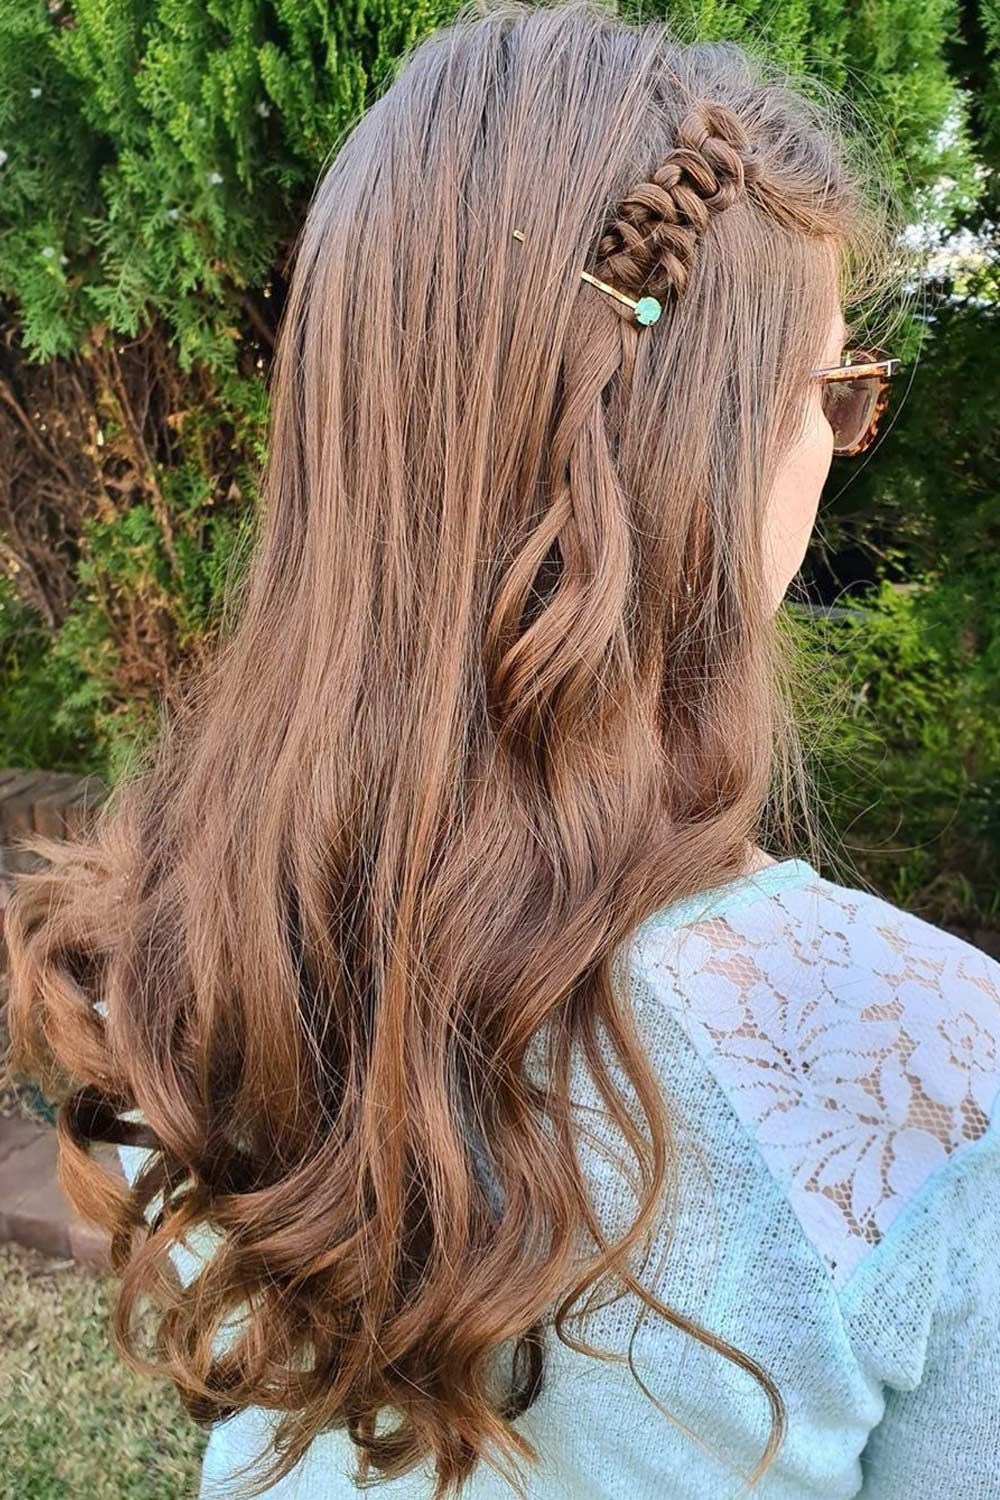 Long Brown Hair With Small Snake Braid